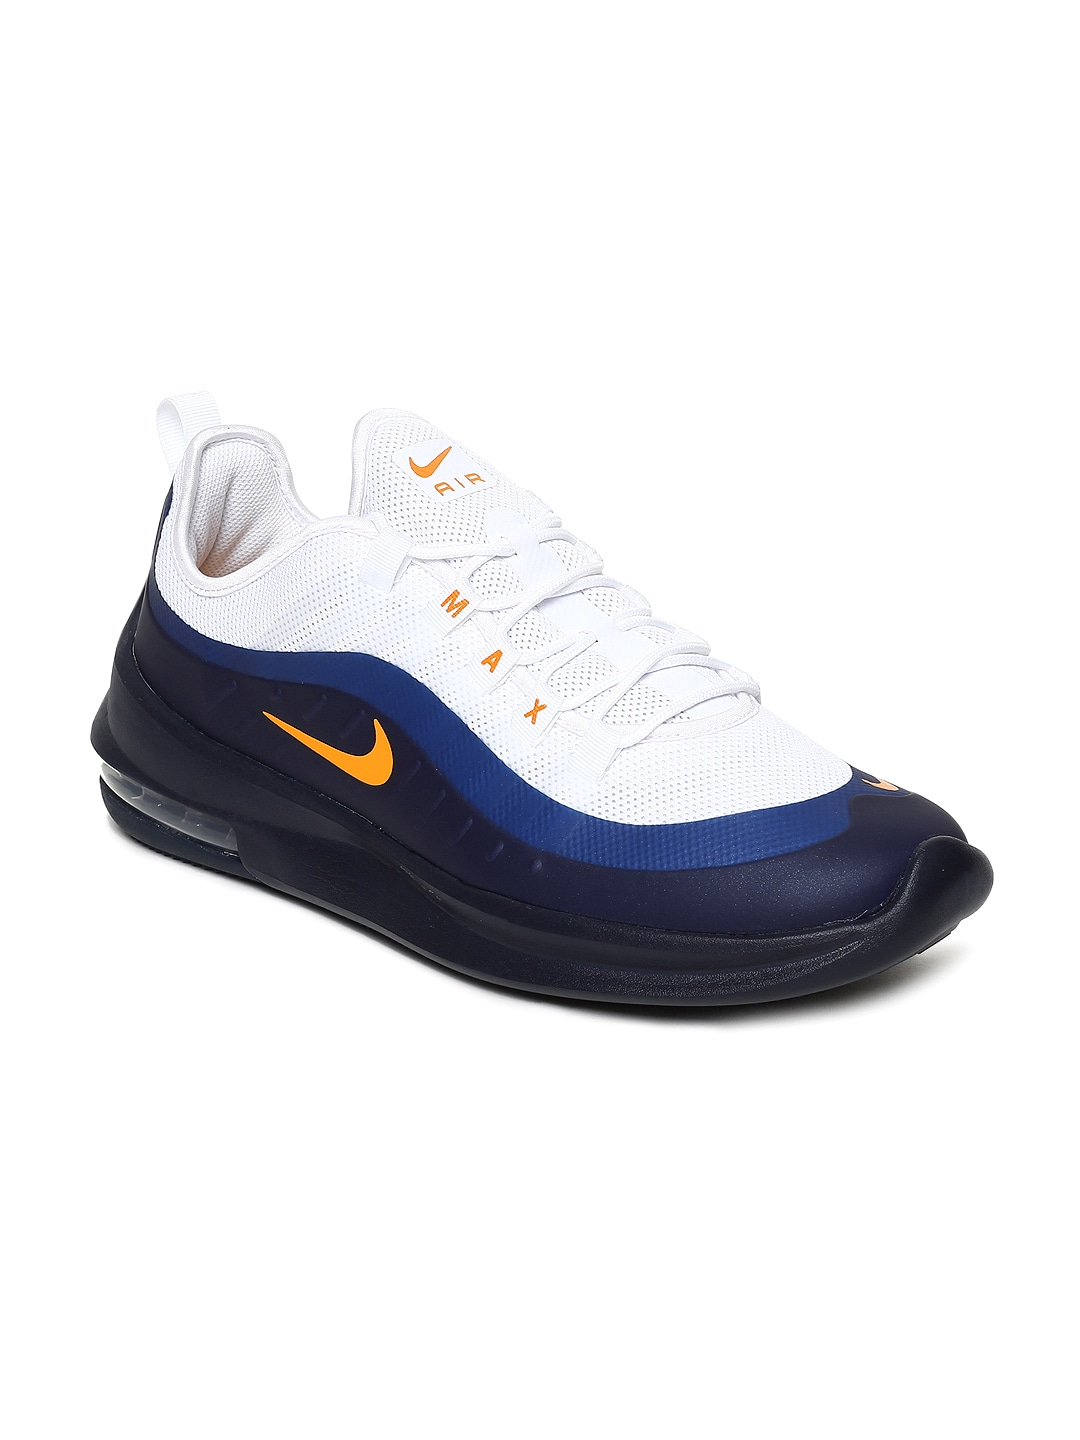 new product 43fc1 987a2 Nike Air Max - Buy Nike Air Max Shoes, Bags, Sneakers in India